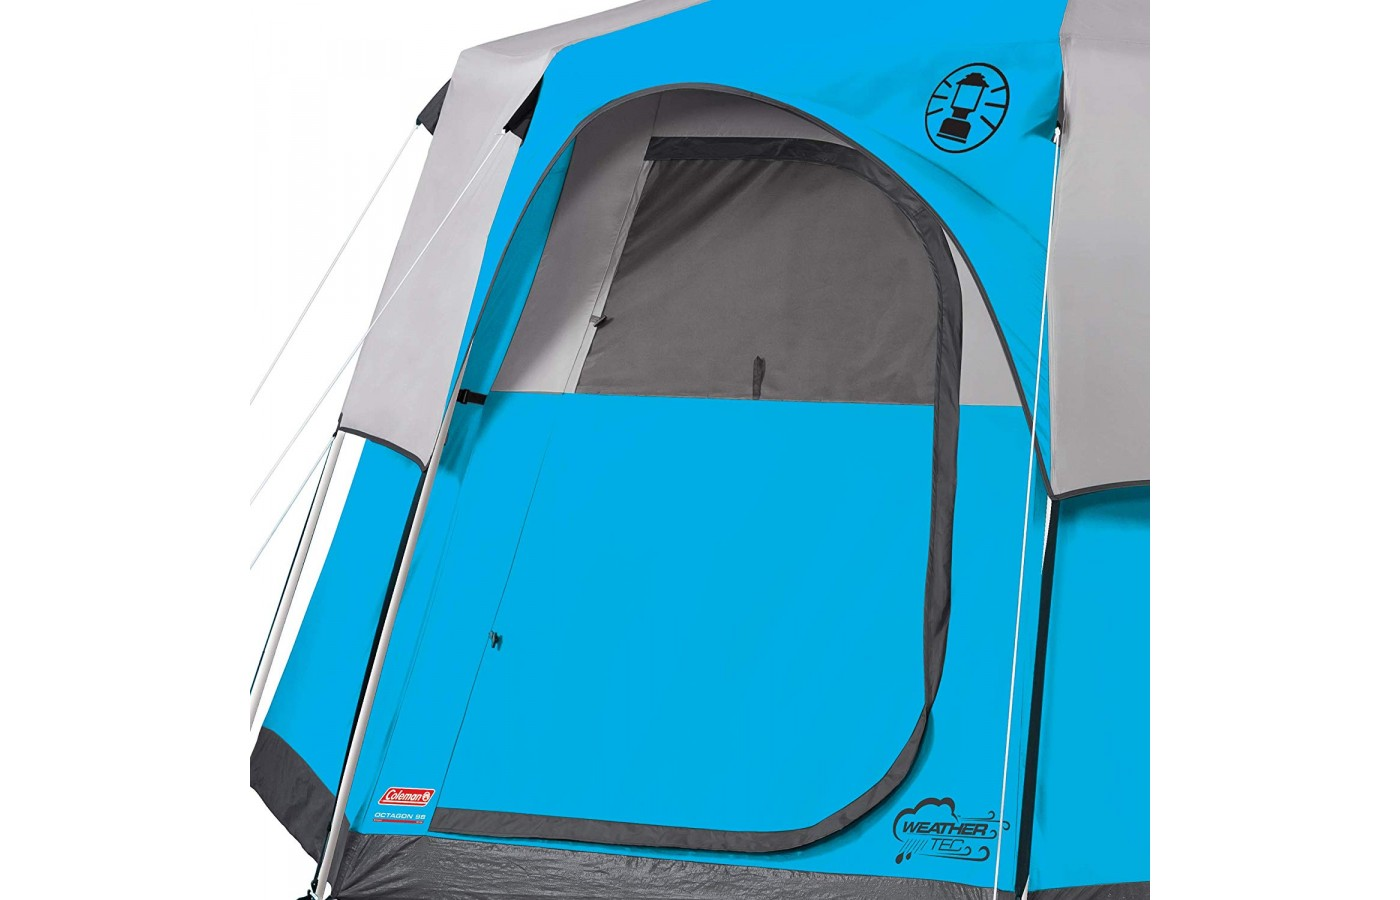 The Coleman Cortes Octagon 8 also offers a structured door that opens and closes without having to zip up the tent.